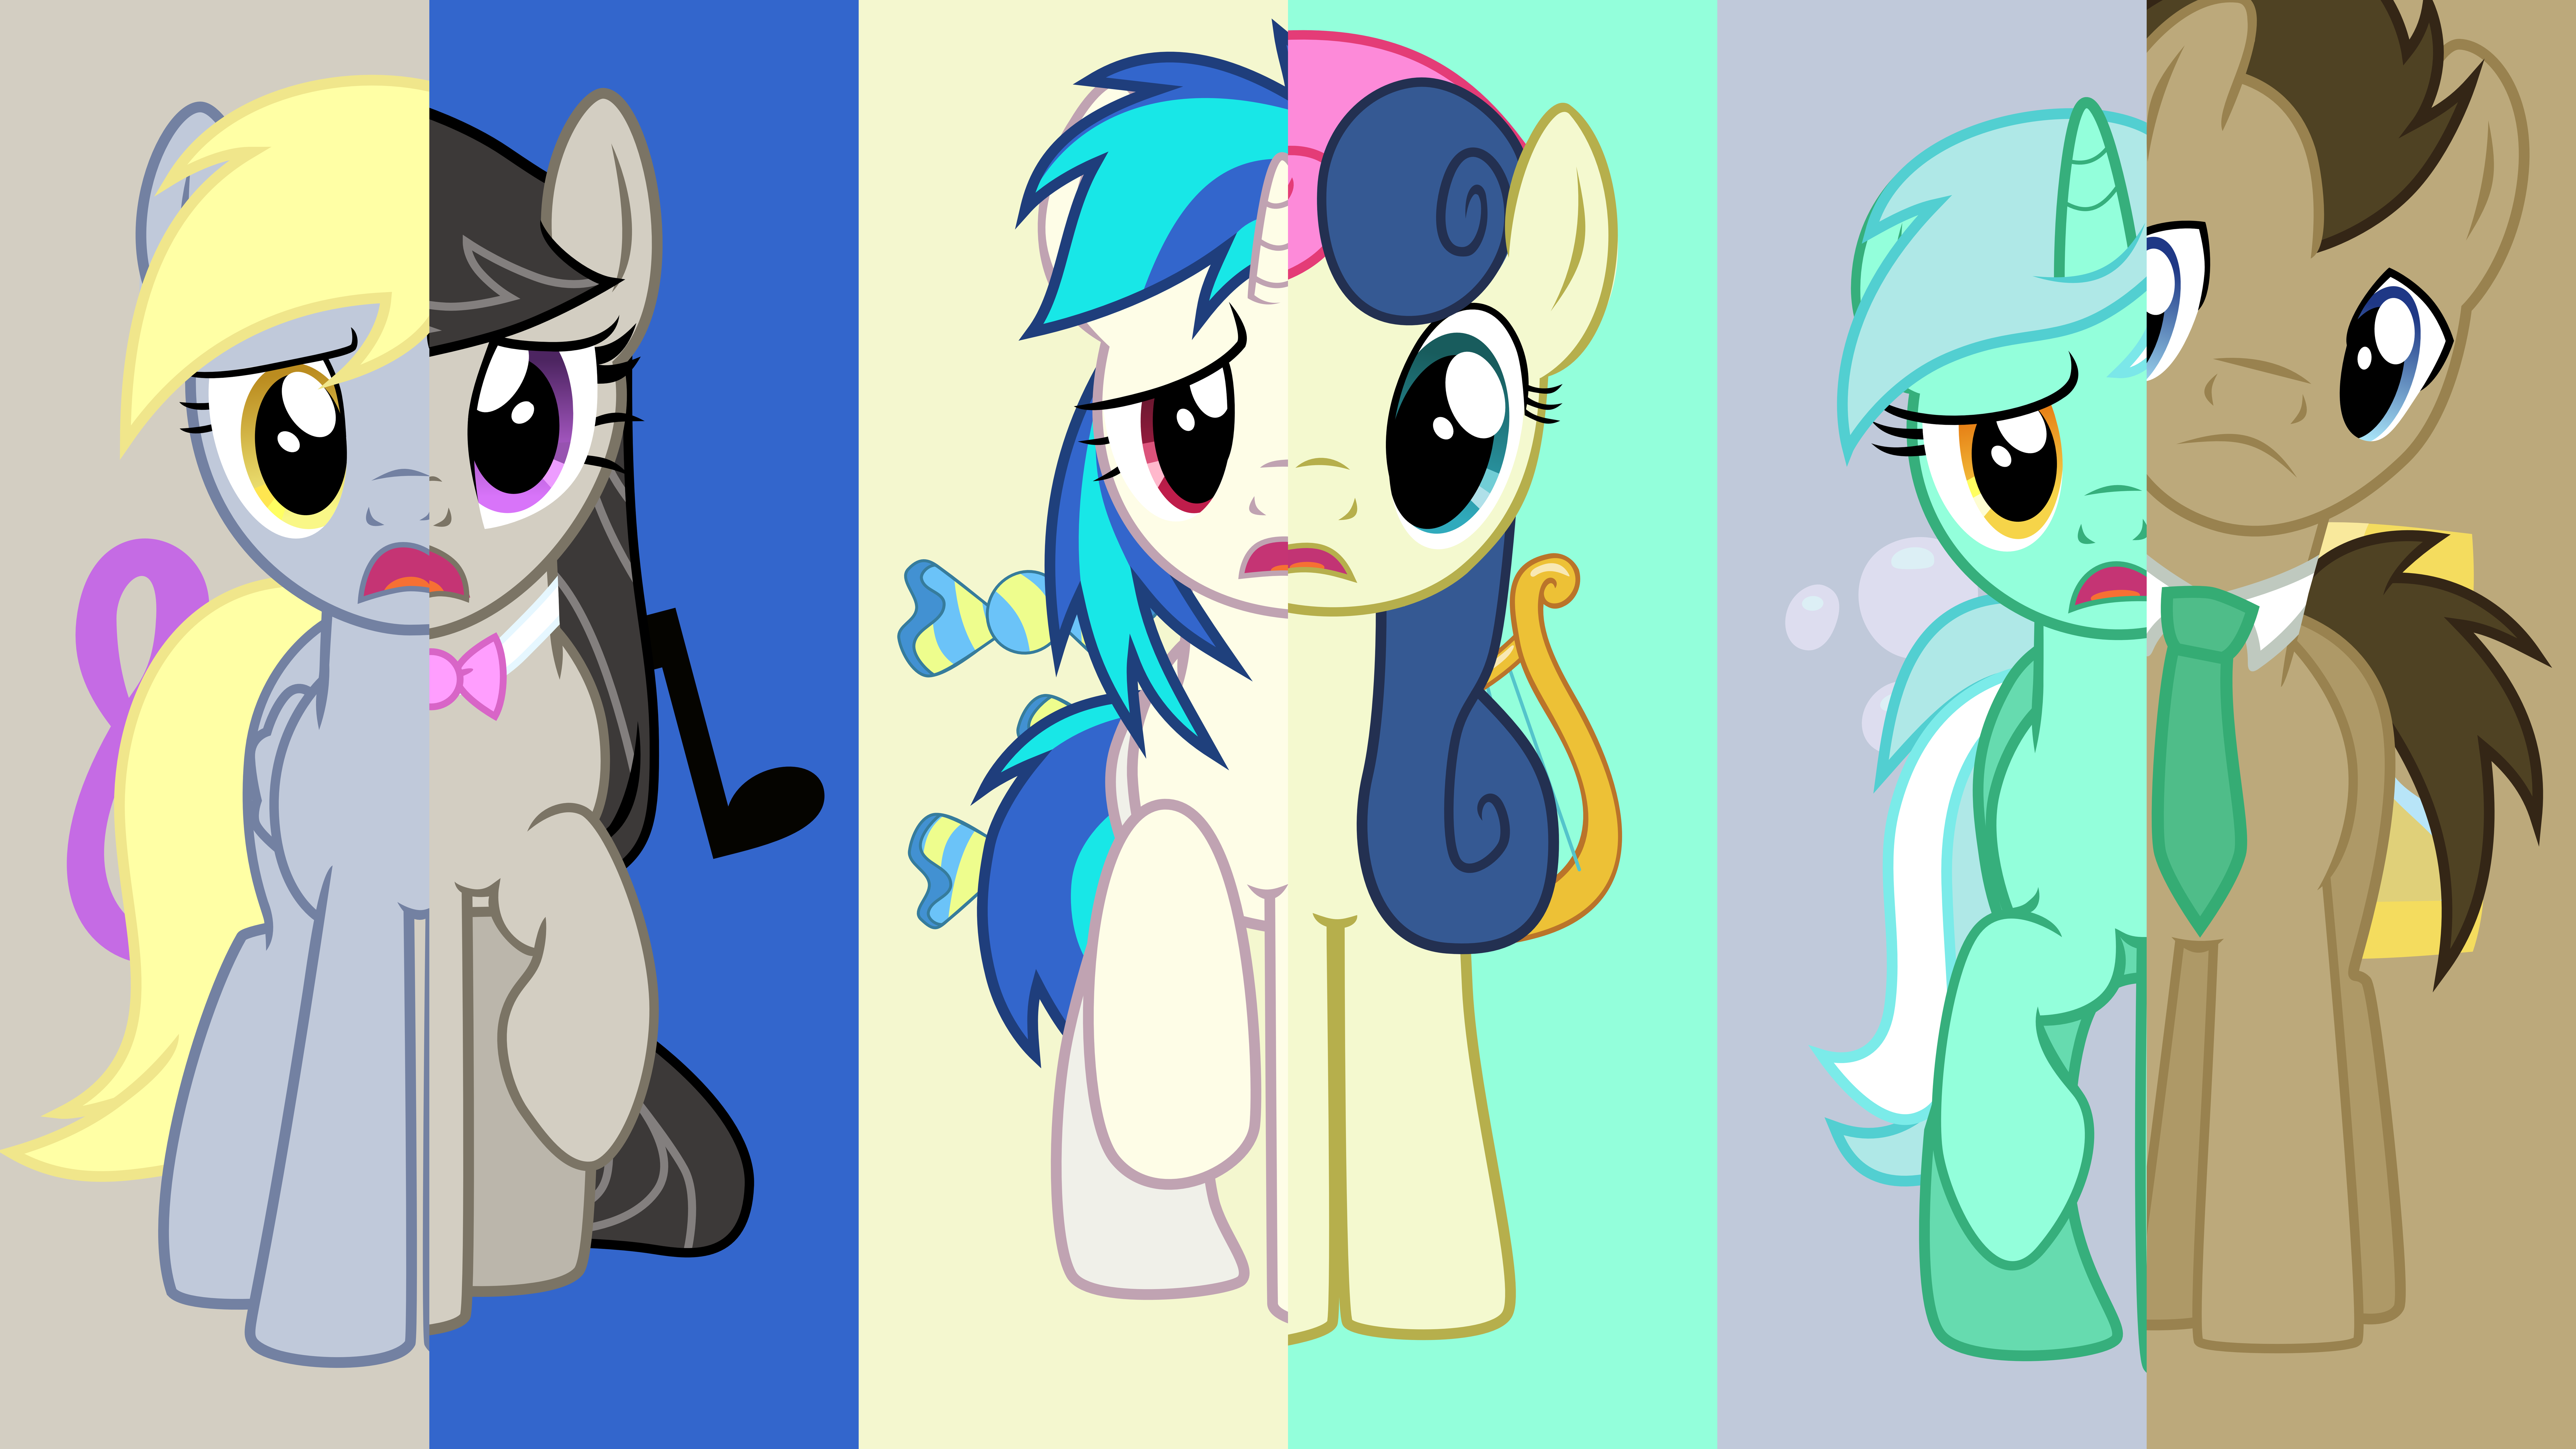 The BG Six: What My Cutie Mark is Telling Me by ChainChomp2, Hawk9mm, mandydax, Parclytaxel and The-Smiling-Pony